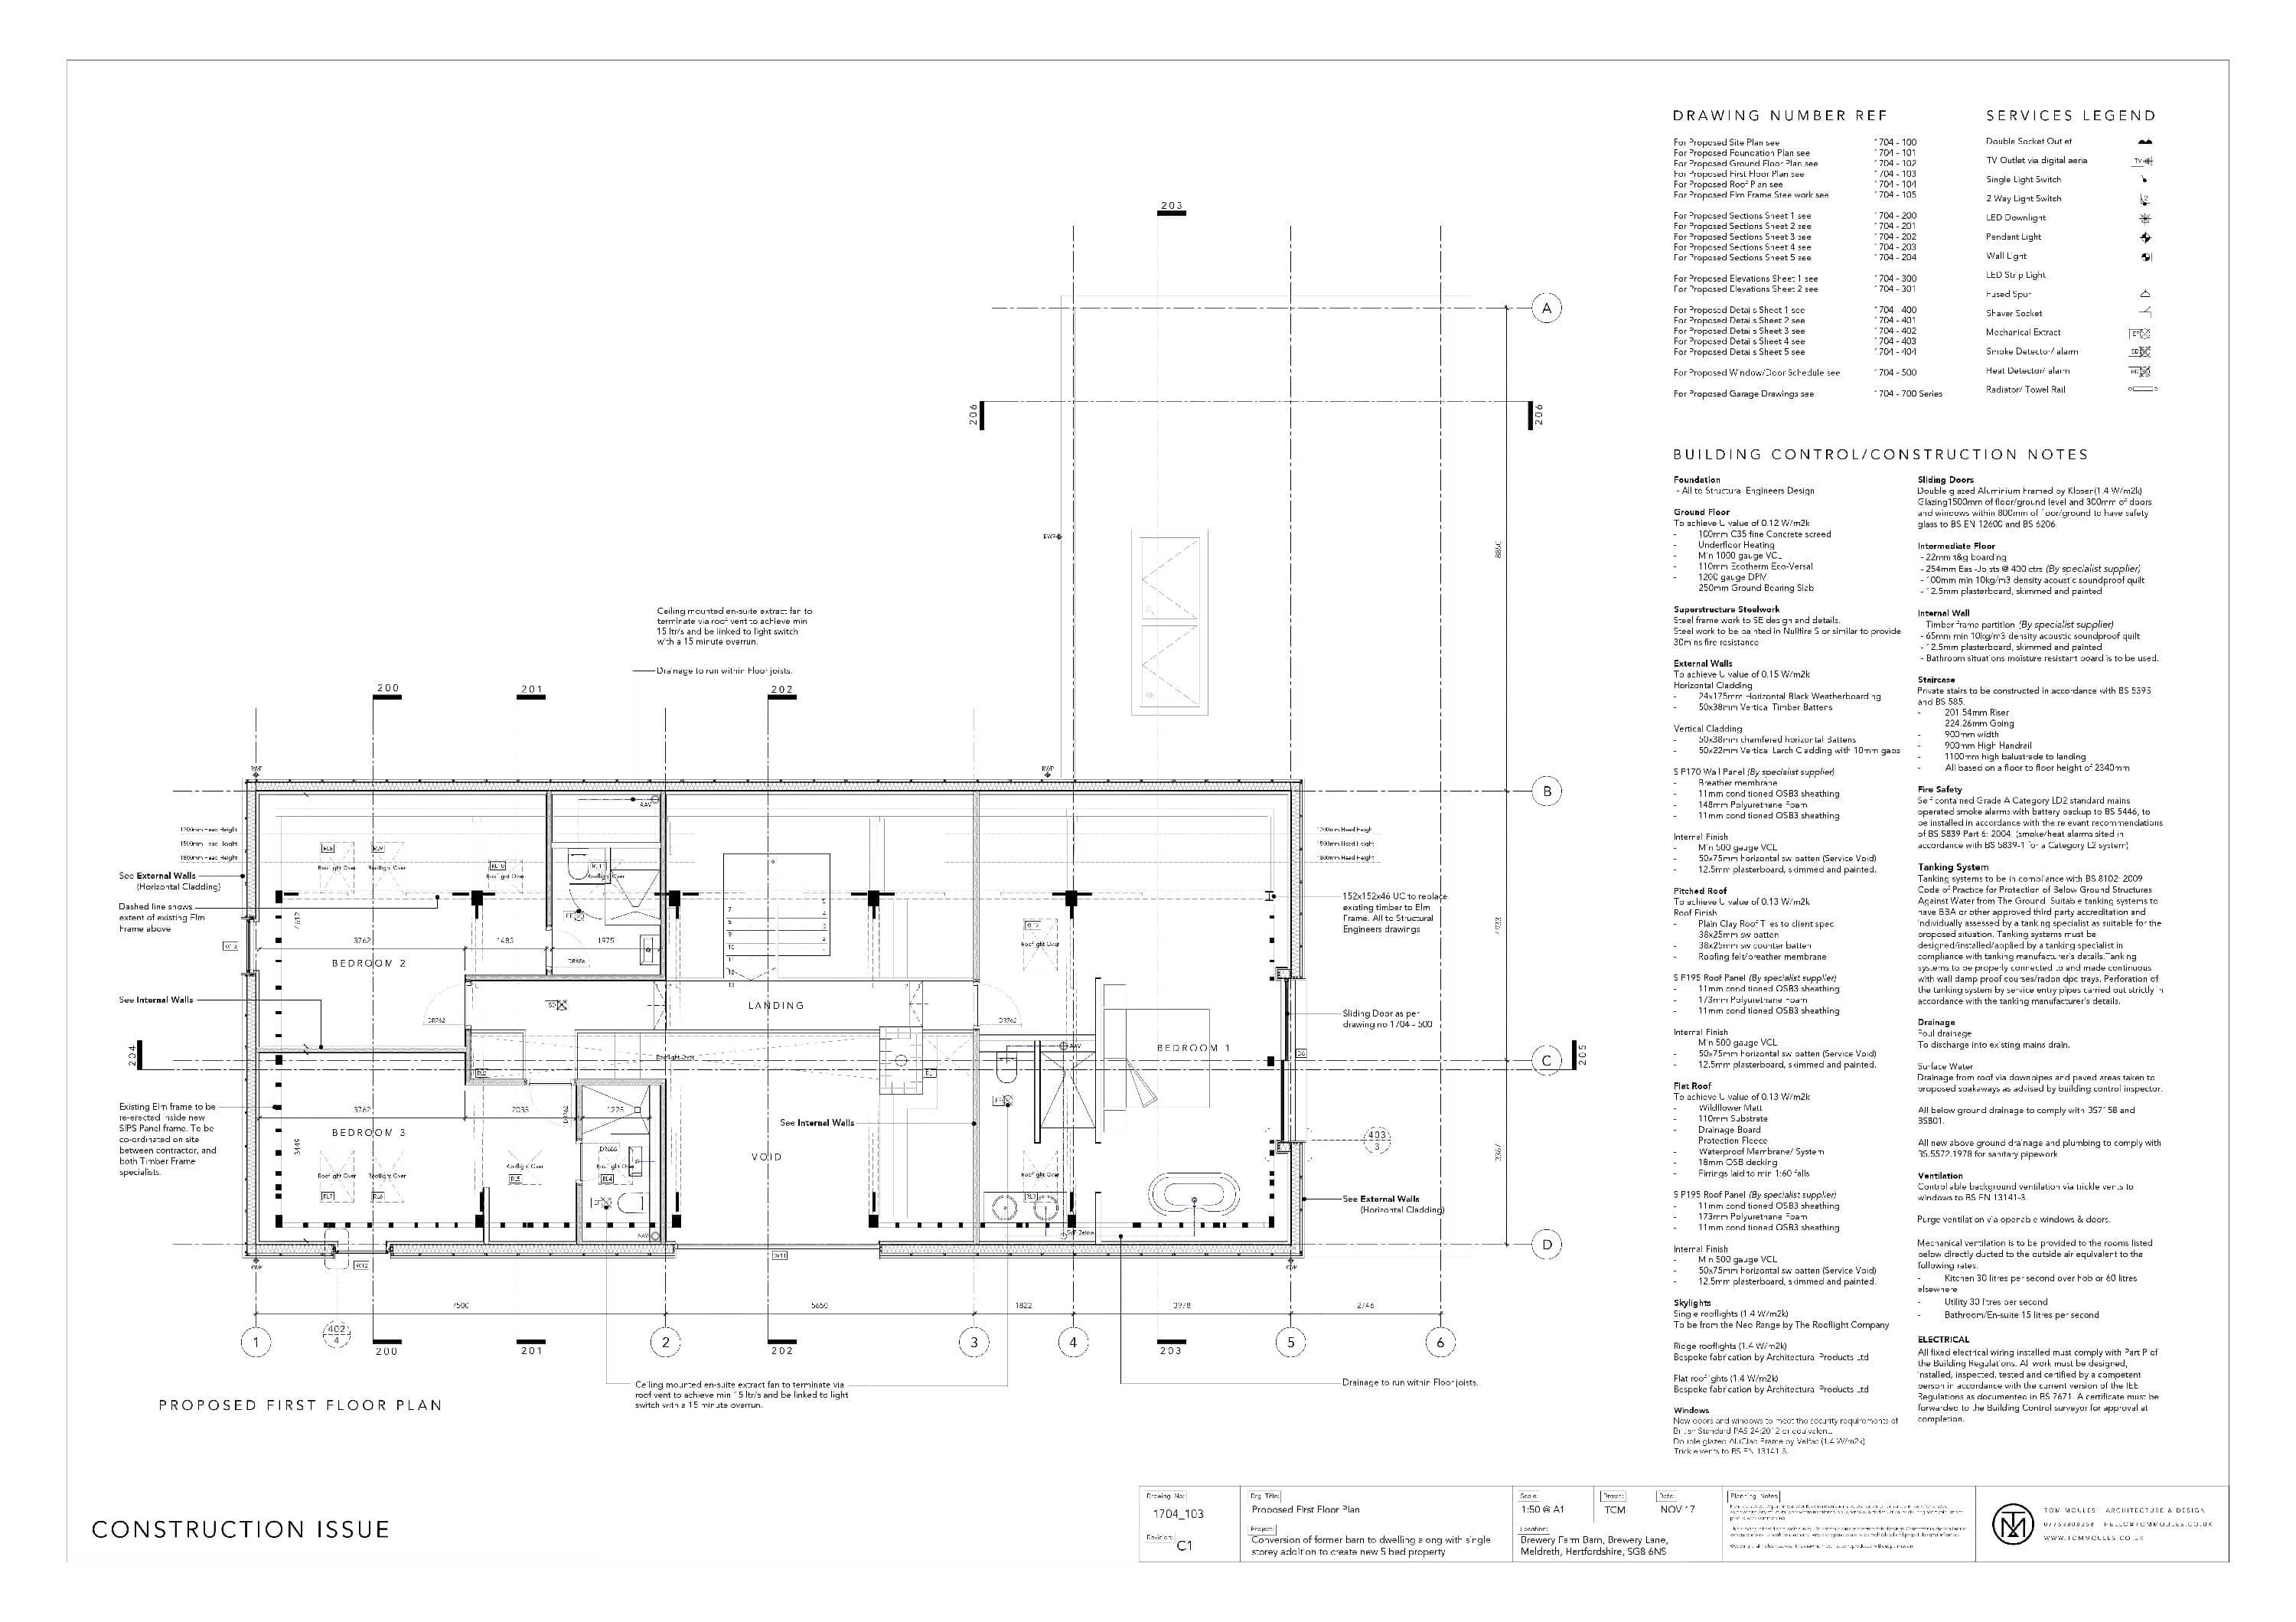 Proposed-First-Floor-Plan_C1